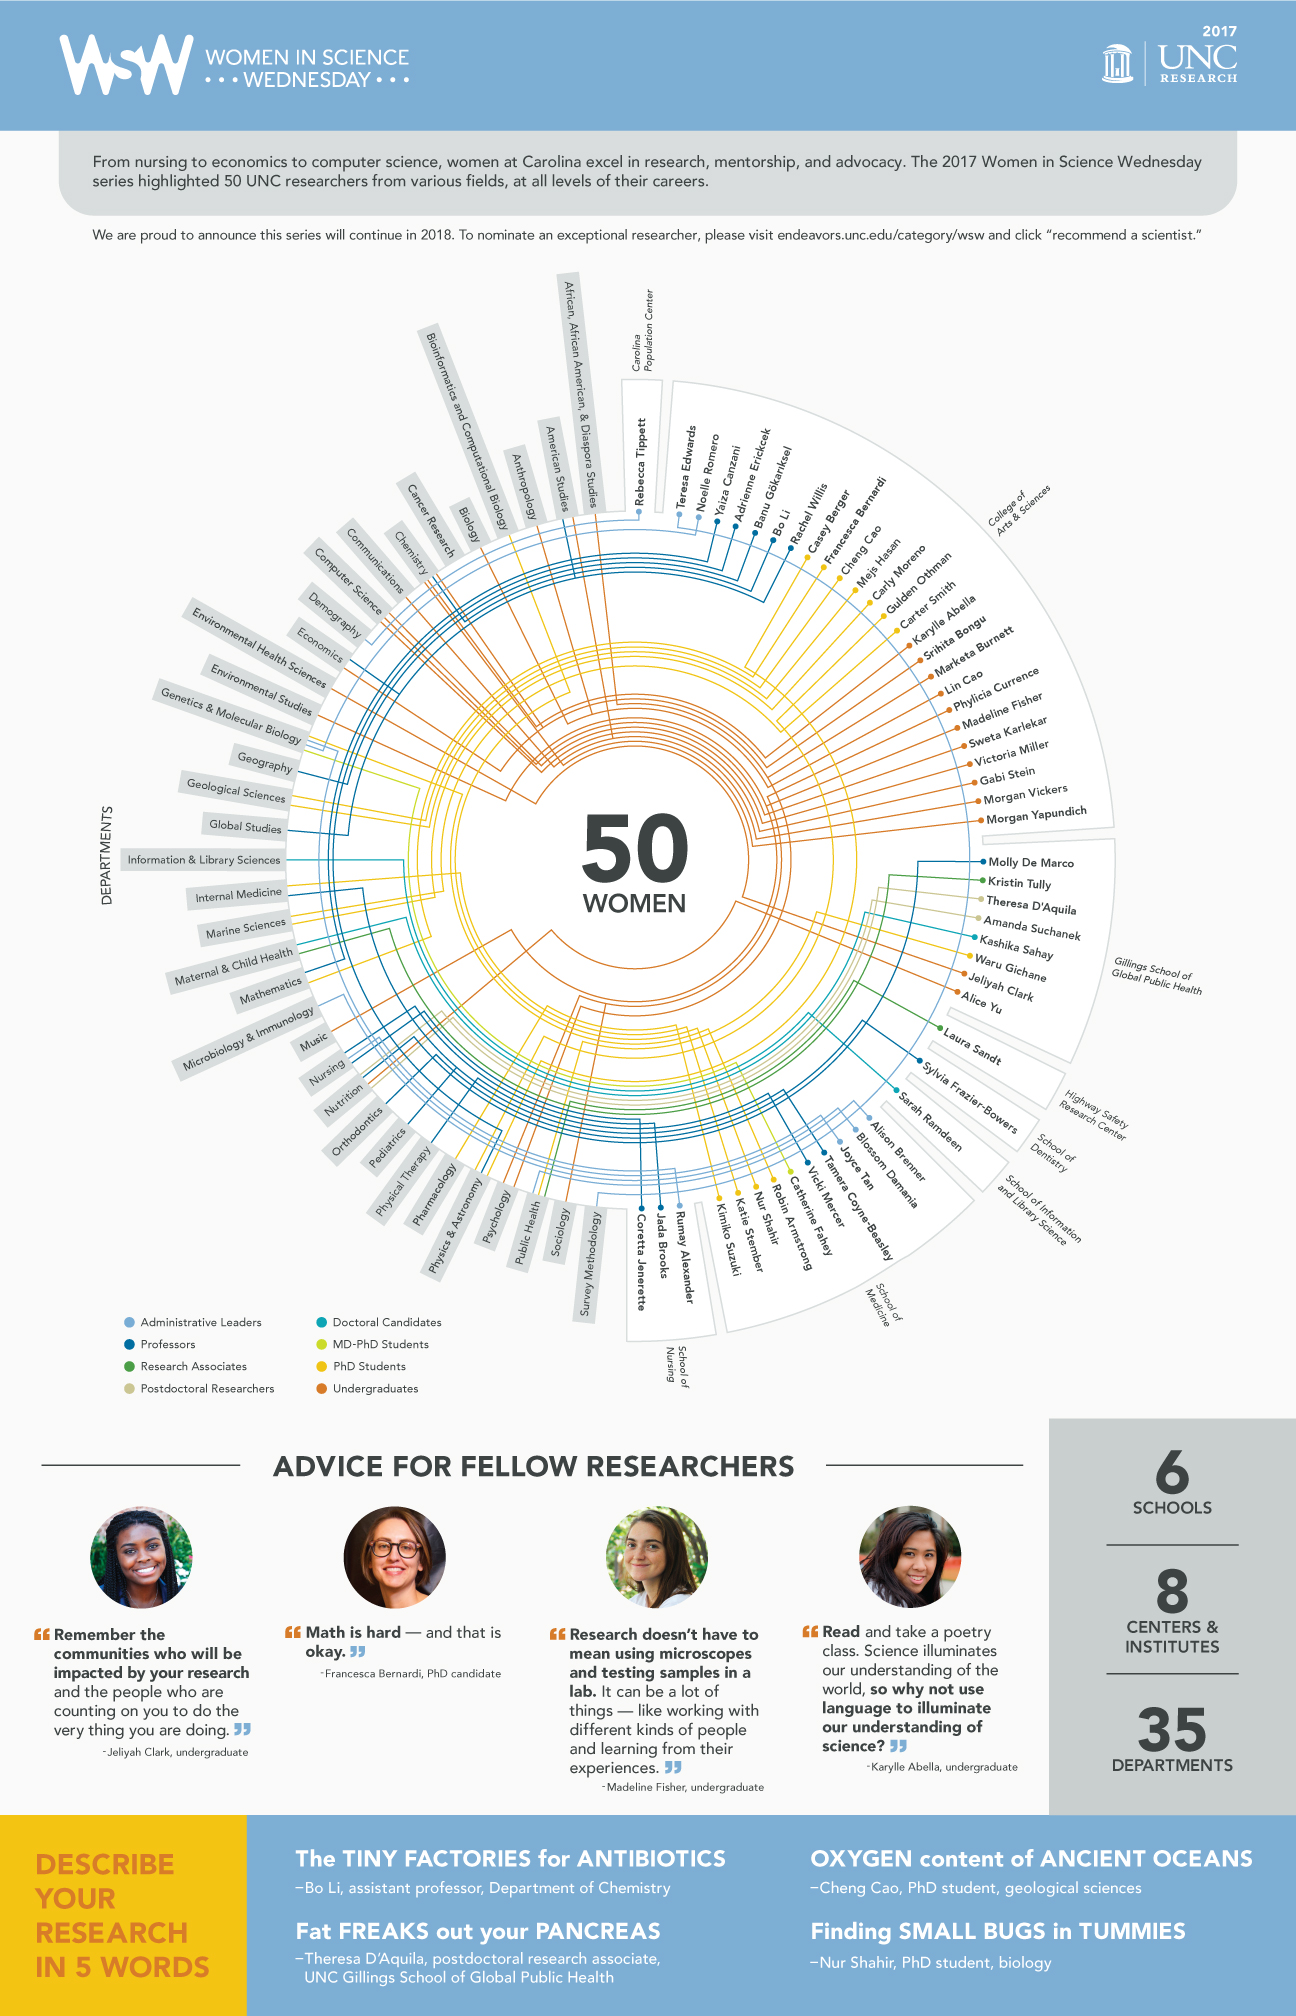 "Women in Science Wednesday 2017 infographic. From nursing to economics to computer science, women at Carolina excel in research, mentorship, and advocacy. The 2017 Women in Science Wednesday series highlighted 50 UNC researchers from various fields, at all levels of their careers. We are proud to announce this series will continue in 2018. To nominate an exceptional researcher, please visit endeavors.unc.edu/category/wsw and click ""recommend a scientist."" The 50 Women were: From the Carolina Population Center - Rebecca Tippett, an Administrative Leader, in the Department of Demography. From the College of Arts and Sciences – Teresa Edwards, an Administrative Leader, in the Department of Survey Methodology; Noelle Romero, an Administrative Leader, in the Department of Genetics and Molecular Biology; Yaiza Canzani, a Professor, in the Department of Mathematics; Adrienne Erickcek, a Professor, in the Department of Physics and Astronomy; Banu Gokariksel, a Professor, in the Department of Geography; Bo Li, a Professor, in the Department of Chemistry; Rachel Willis, a Professor, in the Department of American Studies, Department of Economics, and the Department of Global Studies; Casey Berger, a PhD Student, in the Department of Physics and Astronomy; Francesca Bernardi, a PhD Student, in the Department of Mathematics; Cheng Cao, a PhD Student, in the Department of Geological Sciences; Mejs Hasan, a PhD Student, in the Department of Geological Sciences; Carly Moreno, a PhD Student, in the Department of Marine Sciences; Gulden Othman, a PhD Student, in the Department of Physics and Astronomy; Carter Smith, a PhD Student, in the Department of Marine Sciences; Karylle Abella, an Undergraduate, in the Department of Chemistry; Srihita Bongu, an Undergraduate, in the Department of Economics; Marketa Burnett, an Undergraduate, in the Department of African, African American, and Diaspora Studies and the Department of Psychology; Lin Cao, an Undergraduate, in the Department of Anthropology and the Department of Biology; Phylicia Currence, an Undergraduate, in the Department of Psychology and the Department of Sociology; Madeline Fisher, an Undergraduate, in the Department of Environmental Studies and the Department of Music; Sweta Karlekar, an Undergraduate, in the Department of Computer Science; Victoria Miller, an Undergraduate, in the Department of Computer Science; Gabi Stein, an Undergraduate, in the Department of Computer Science; Morgan Vickers, an Undergraduate, in the Department of American Studies and the Department of Communications; and Morgan Yapundich; an Undergraduate, in the Department of Chemistry. From the Gillings School of Global Public Health – Molly De Marco, a Professor, in the Department of Nutrition; Kristin Tully, a Research Associate, in the Department of Maternal and Child Health; Theresa D'Aquila, a Postdoctoral Researcher, in the Department of Nutrition; Amanda Suchanek, a Postdoctoral Research, in the Department of Nutrition; Kashika Sahay, a Doctoral Candidate, in the Department of Maternal and Child Health; Waru Gichane, a PhD Student, in the Department of Public Health; Jeliyah Clark, an Undergraduate, in the Department of Environmental Health Sciences; and Alice Yu, an Undergraduate, in the Department of Nutrition. Highway Safety Research Center – Laura Sandt, a Research Associate, from the Department of Public Health. School of Dentistry – Sylvia Frazier-Bowers, a Professor, in the Department of Orthodontics. School of Information and Library Science – Sarah Ramdeen, a Doctoral Candidate, in the Department of Information and Library Sciences. School of Medicine – Alison Brenner, an Administrative Leader, in the Department of Public Health; Blossom Damania, an Administrative Leader, in the Department of Microbiology and Immunology; Joyce Tan, an Administrative Leader, in the Department of Genetics and Molecular Biology; Tamera Coyne-Beasley, a Professor, in the Department of Pediatrics and the Department of Internal Medicine; Vicki Mercer, a Professor, in the Department of Physical Therapy; Catherine Fahey, a MD-PhD Student, in the Department of Genetics and Molecular Biology; Robin Armstrong, a PhD Student, in the Department of Genetics and Molecular Biology; Nur Shahir, a PhD Student, in the Department of Bioinformatics and Computational Biology; Katie Stember, a PhD Student, in the Department of Internal Medicine; and Kimiko Suzuki, a PhD Student, in the Department of Pharmacology. School of Nursing – Rumay Alexander, an Administrative Leader, in the Department of Nursing; Jada Brooks, a Professor, in the Department of Nursing; and Coretta Jennerette, a Professor, in the Department of Nursing. Advice for Fellow Researchers: ""Remember the communities who will be impacted by your research and the people who are counting on you to do the very thing you are doing."" By Jeliya Clark, undergraduate: ""Math is hard – and that is okay."" By Francesca Bernardi, PhD candidate; ""Research doesn't have to mean using microscopes and testing samples in a lab. It can be a lot of things – like working with different kinds of people and learning from their experiences."" By Madeline Fisher, undergraduate.; ""Read and take a poetry class. Science illuminates our understanding of the world, so why not use language to illuminate our understanding of science?"" By Karylle Abella, undergraduate. Describe your research in five words: ""The tiny factories in antibiotics."" By Bo Li, assistant professor, department of Chemistry; ""Oxygen content of ancient oceans."" By Cheng Cao, PhD Student, geological sciences; ""Fat freaks out your pancreas."" By Theresa D'Aquila, postdoctal research associate, UNC Gillings School of Global Public Health; ""Finding small bugs in tummies."" by Nur Shahir, PhD student, biology. Out of the 50 women, 6 schools, 8 centers and institutes, and 35 departments are represented."